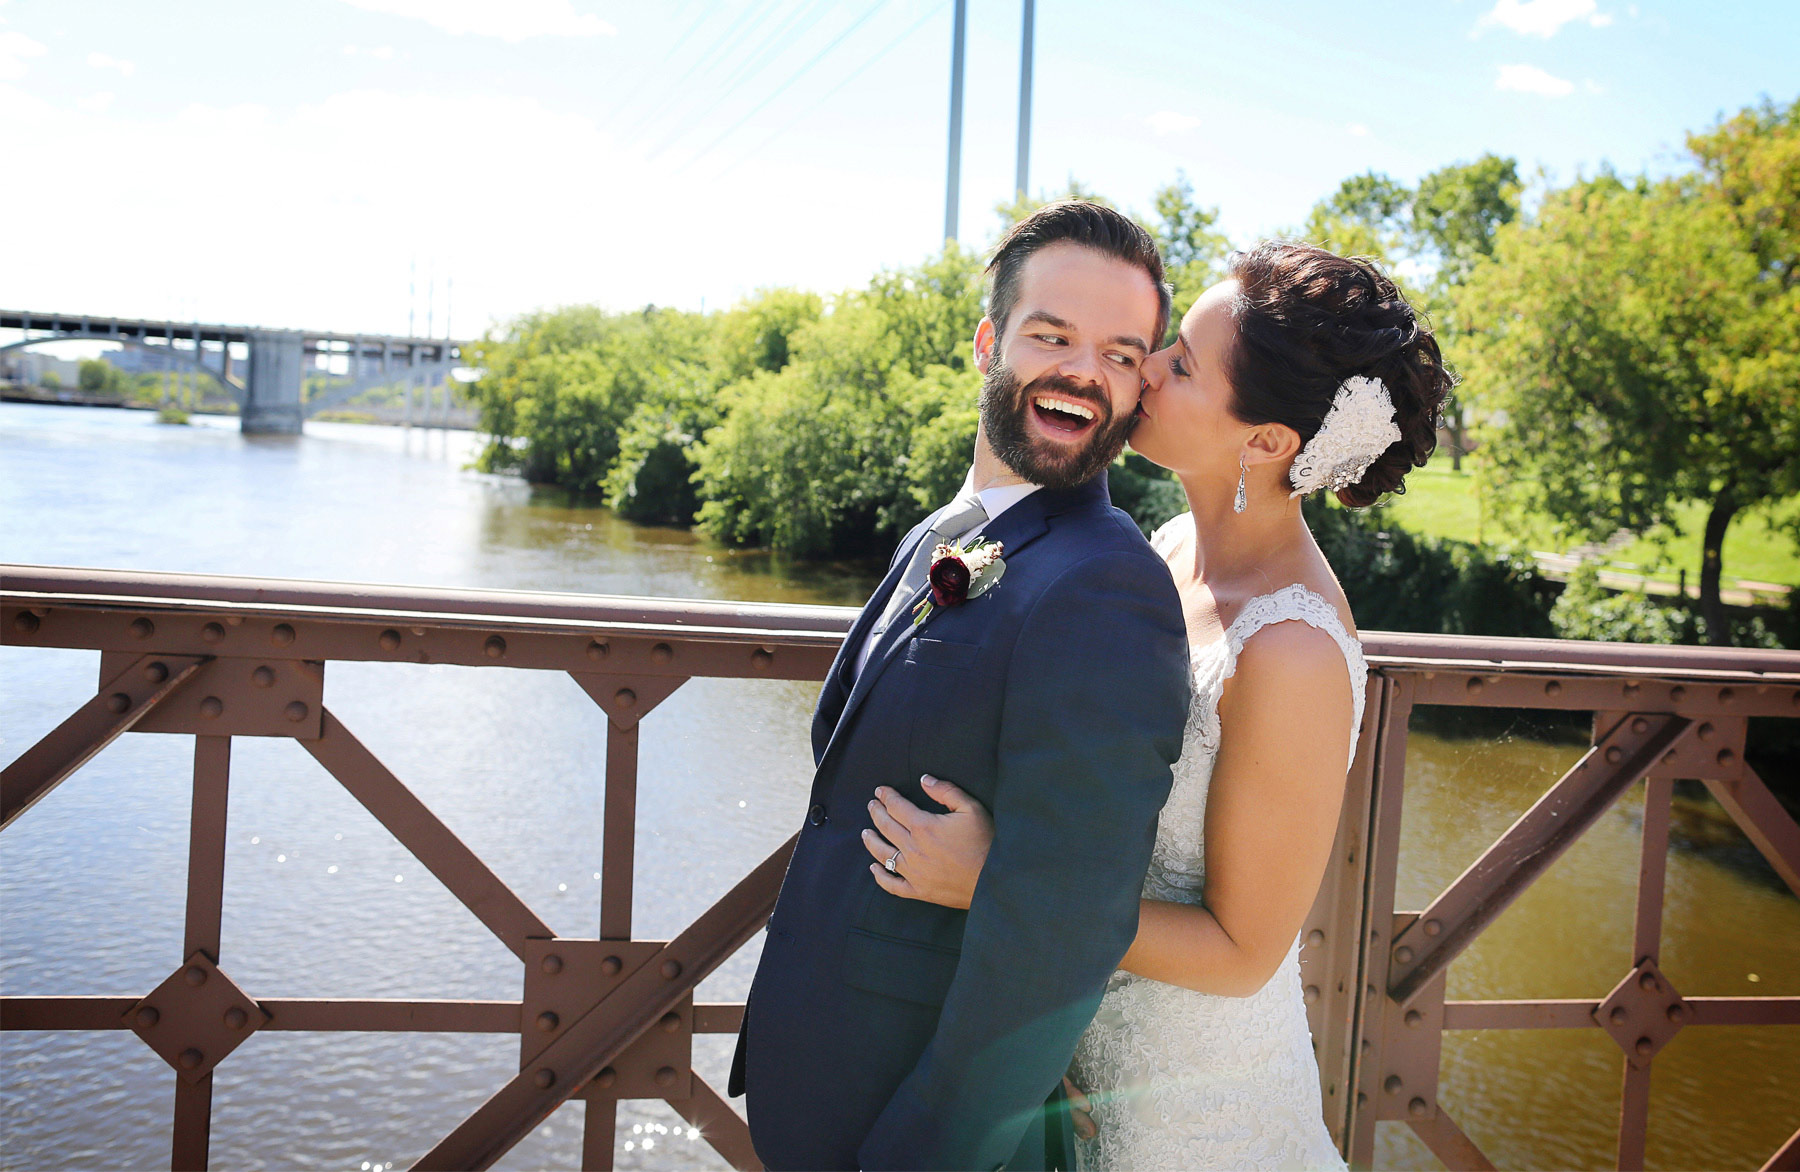 06-Minneapolis-Minnesota-Wedding-Photographer-by-Andrew-Vick-Photography-Summer-First-Meeting-Look-Bride-Groom-Merriam-Street-Bridge-Mississippi-River-Kiss-Ashley-and-Eric.jpg